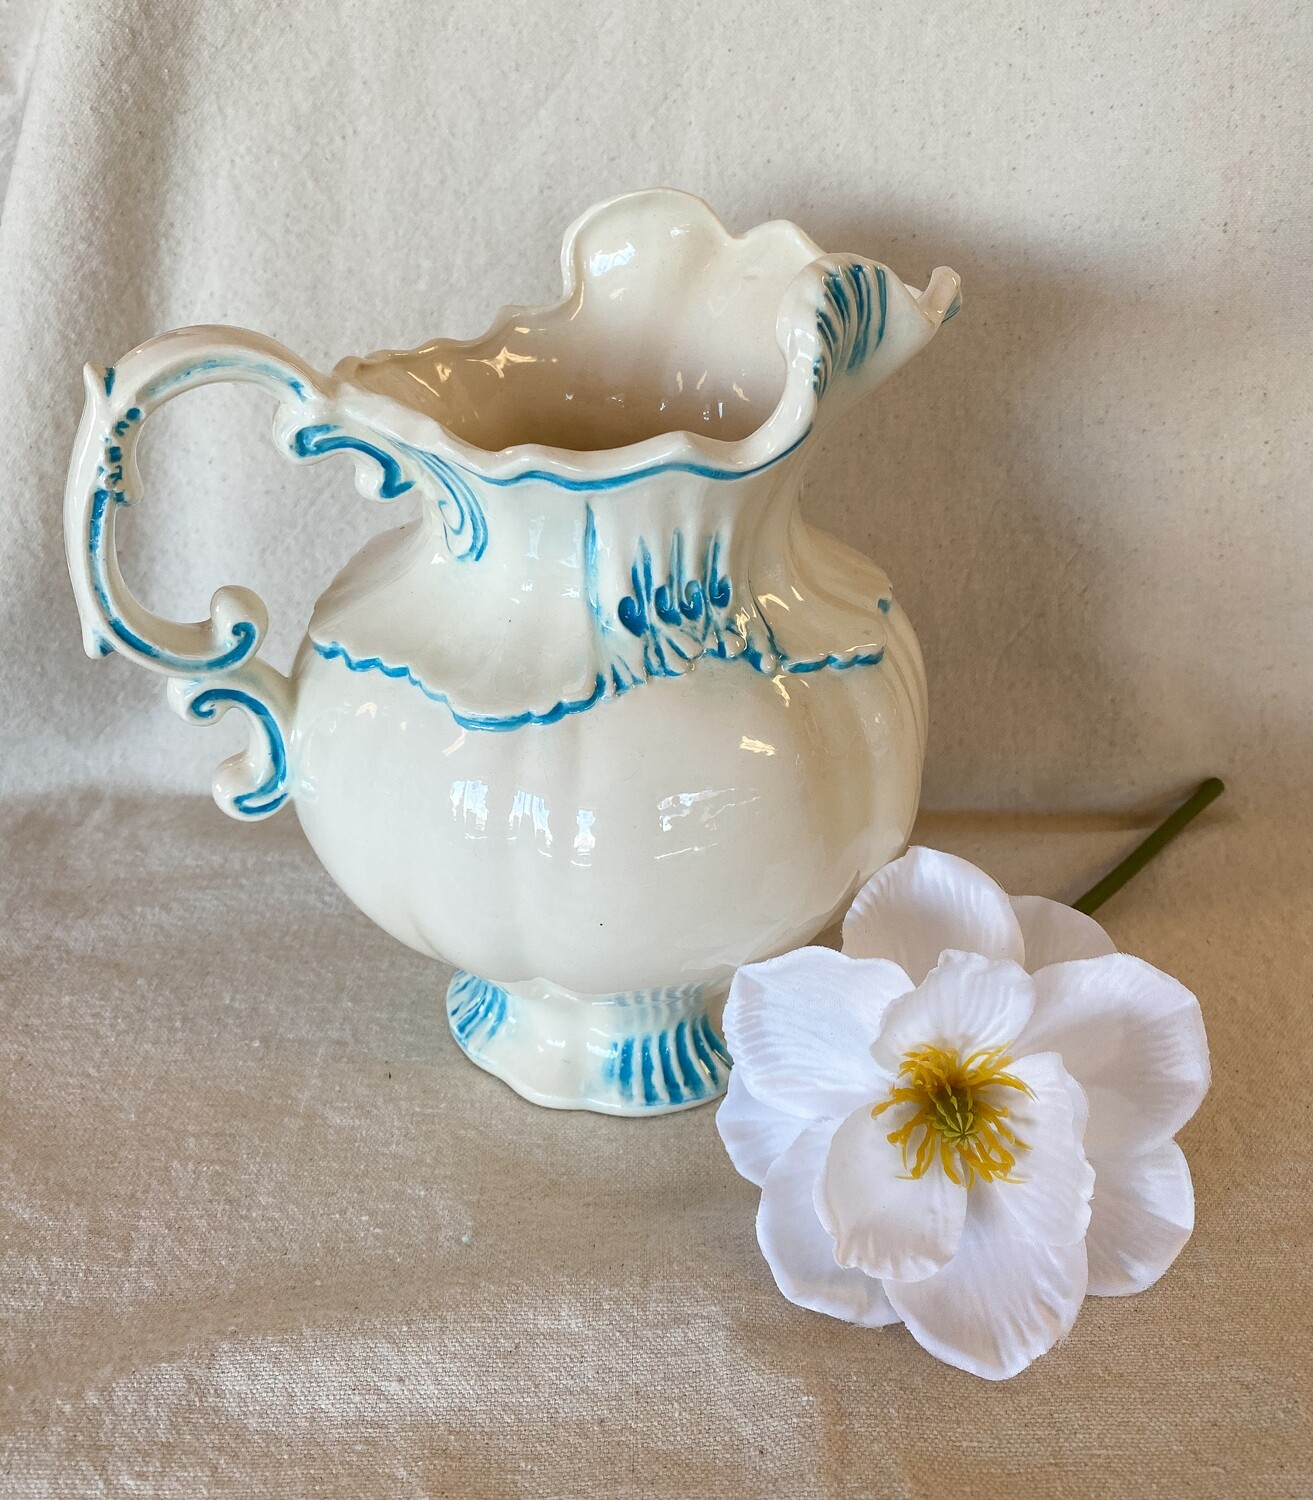 Teal & Cream Ceramic Pitcher